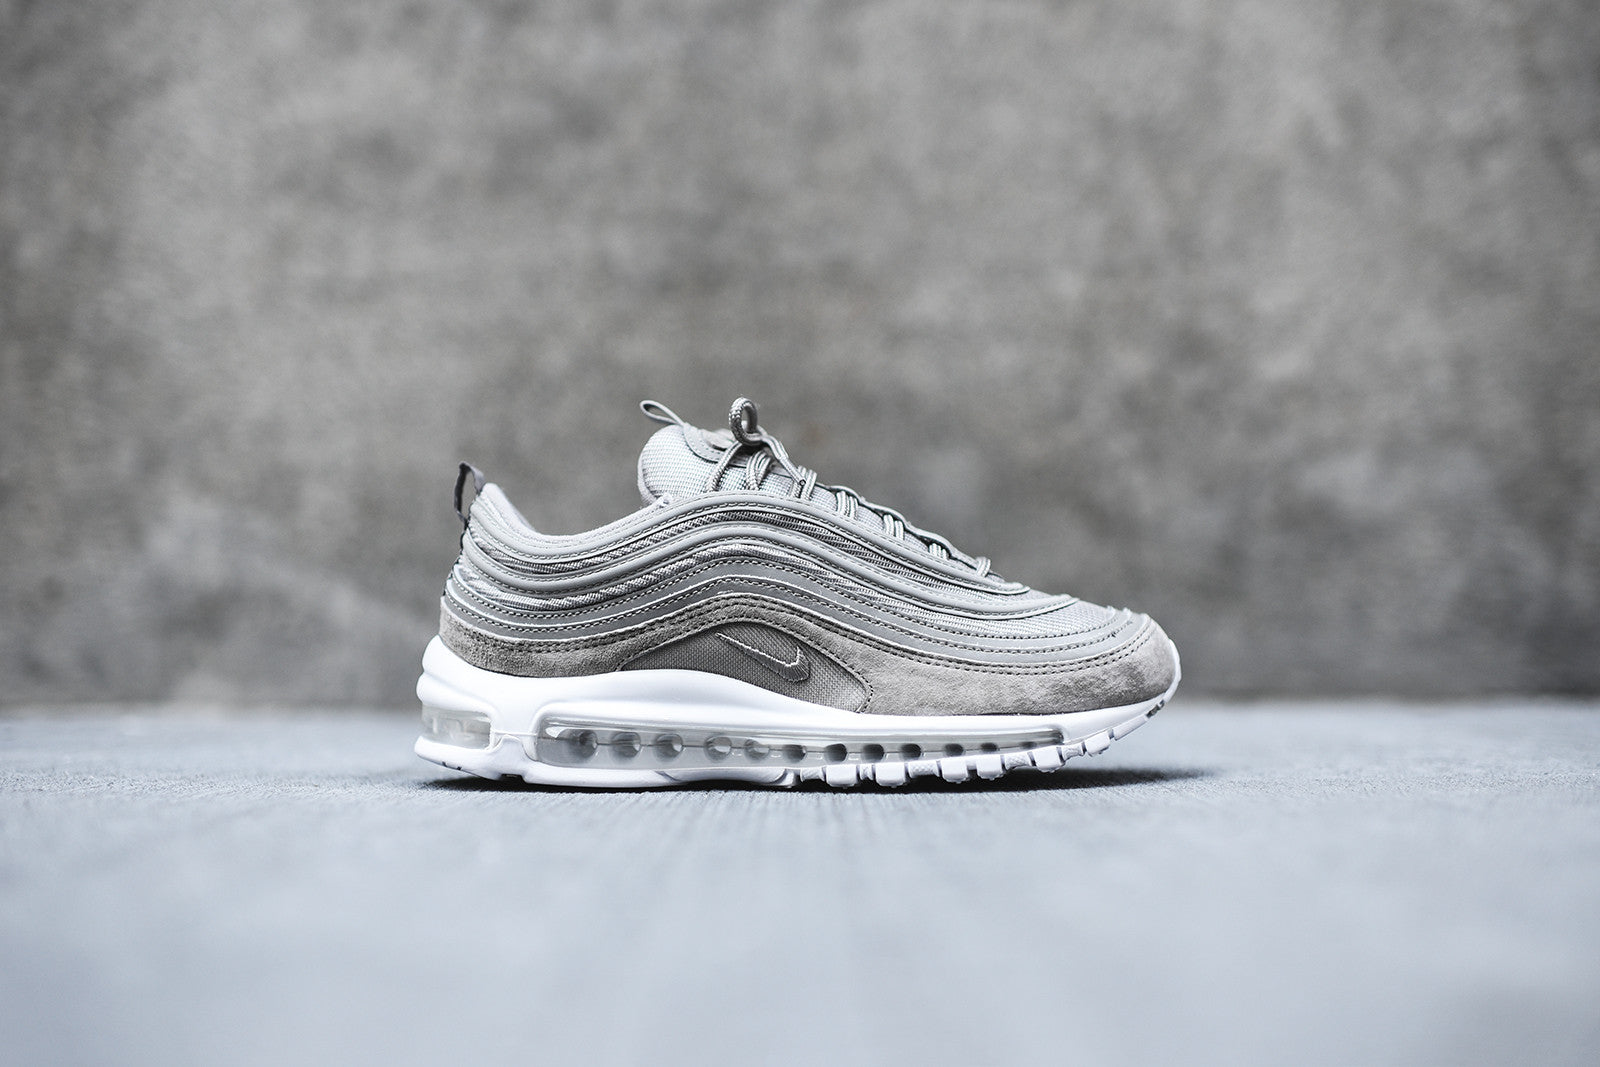 Nike Air Max 97 PRM - Cobblestone / White